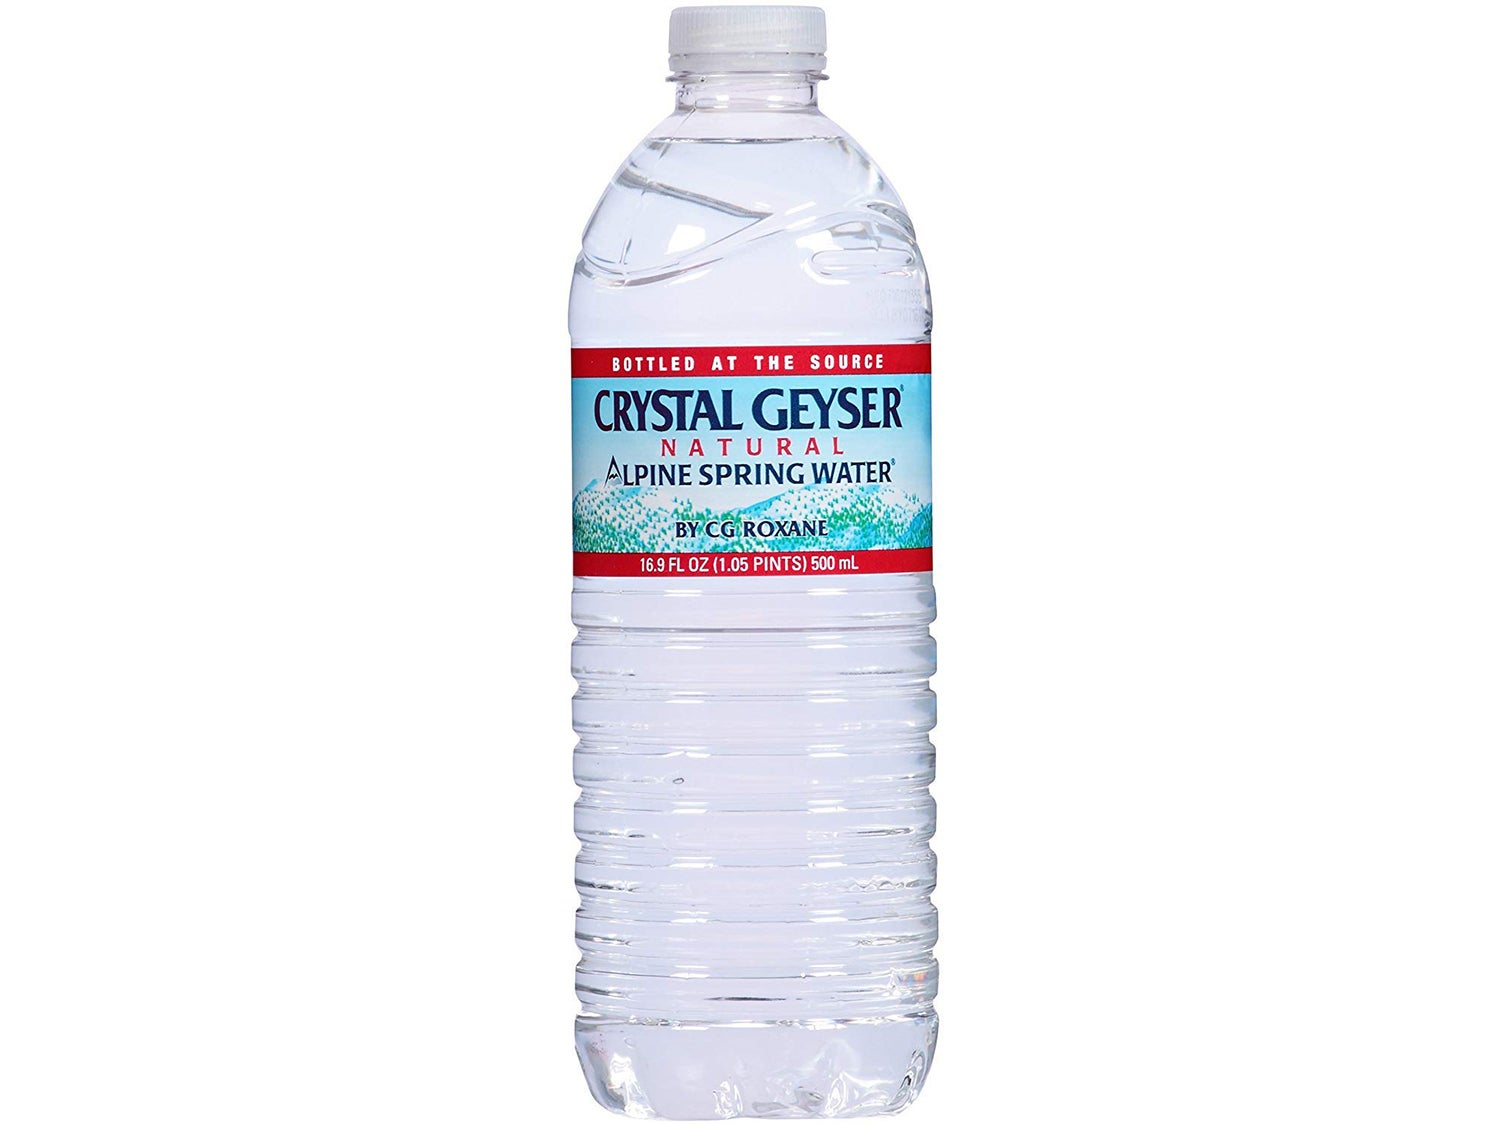 A bottle of crystal geyser water.